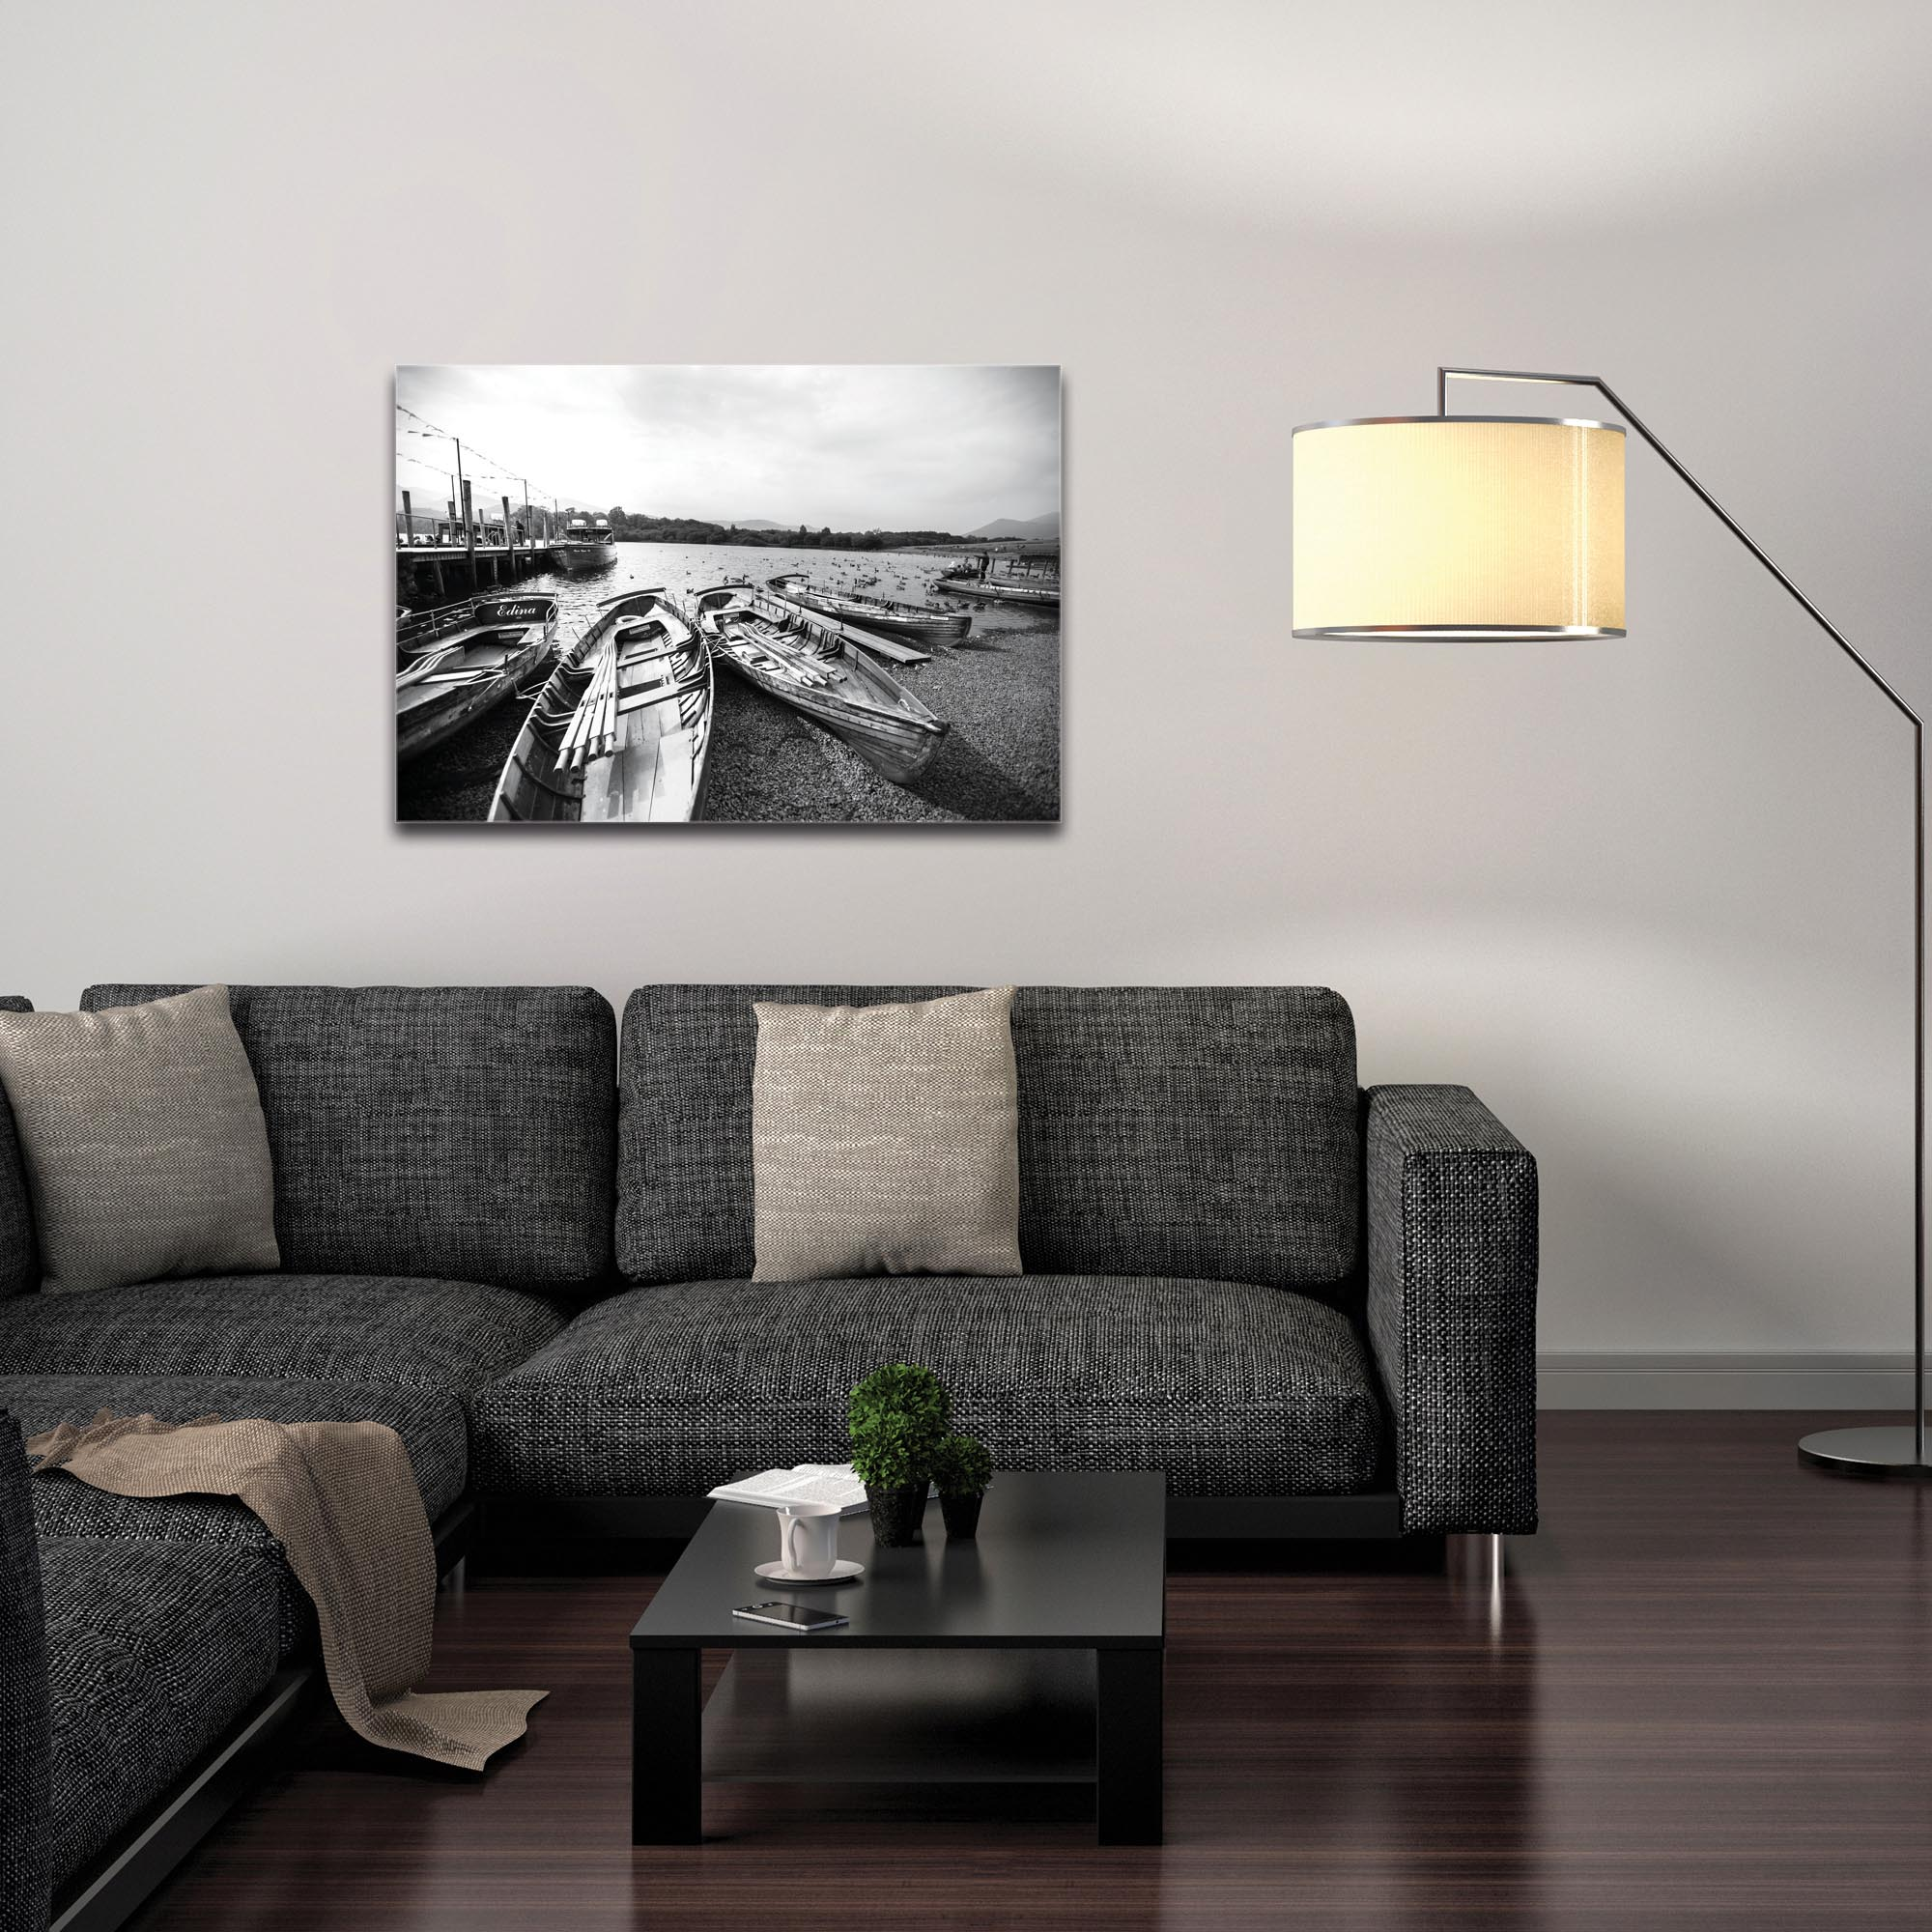 Black & White Photography 'Row of Rowers' - Coastal Art on Metal or Plexiglass - Image 3